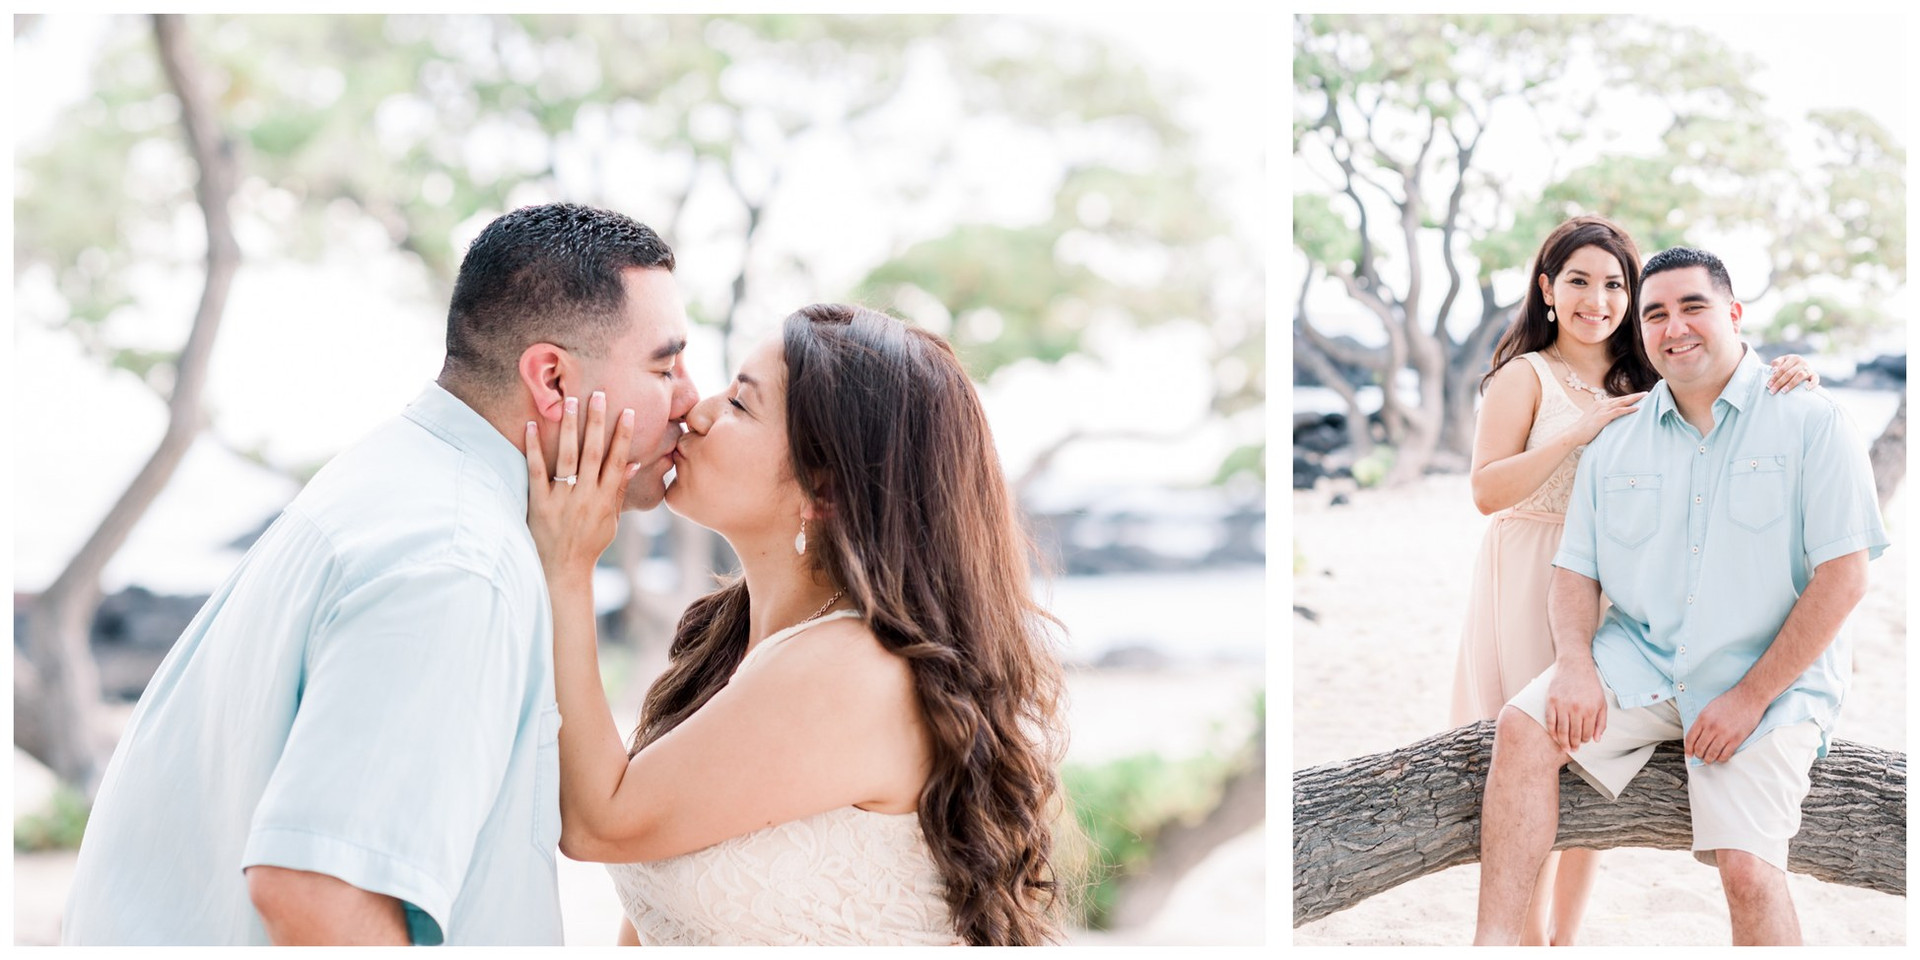 Hawaii Engagement Photographers 13.jpg